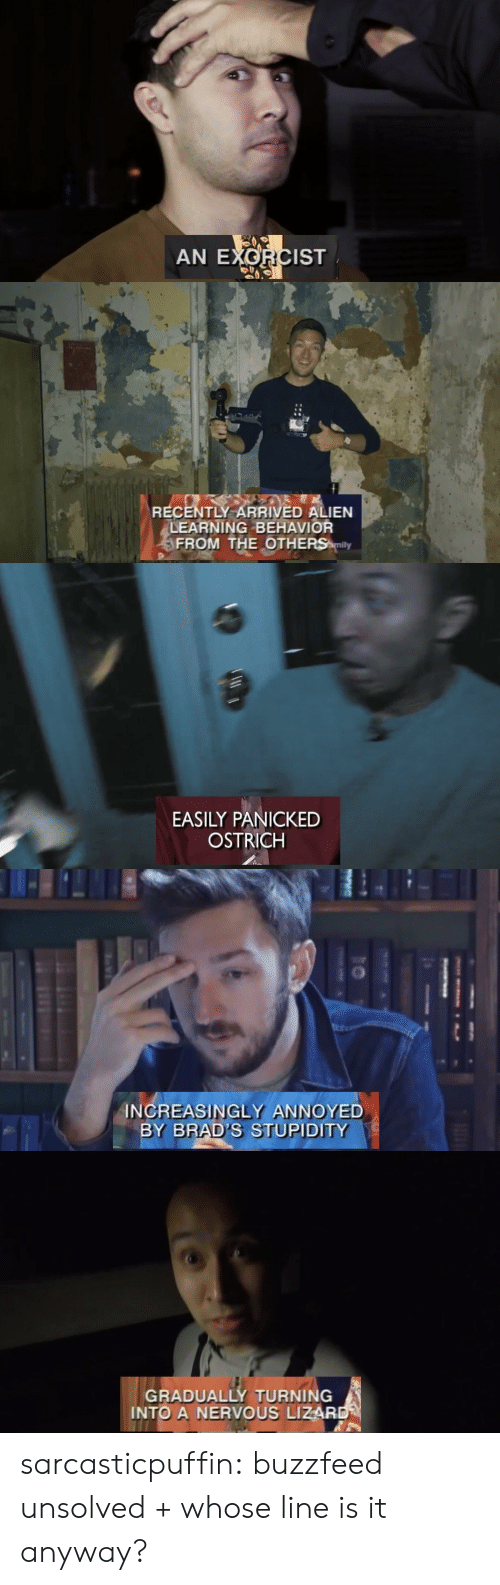 Brads: AN EXORCIST   RECENTLY ARRIVED ALIEN  LEARNING BEHAVIOR  FROM THE OTHERS mily   EASILY PANICKED  OSTRICH   INCREASINGLY ANNOYED  BY BRAD'S STUPIDITY   GRADUALLY TURNING  INTO A NERVOUS LIZAR sarcasticpuffin: buzzfeed unsolved + whose line is it anyway?